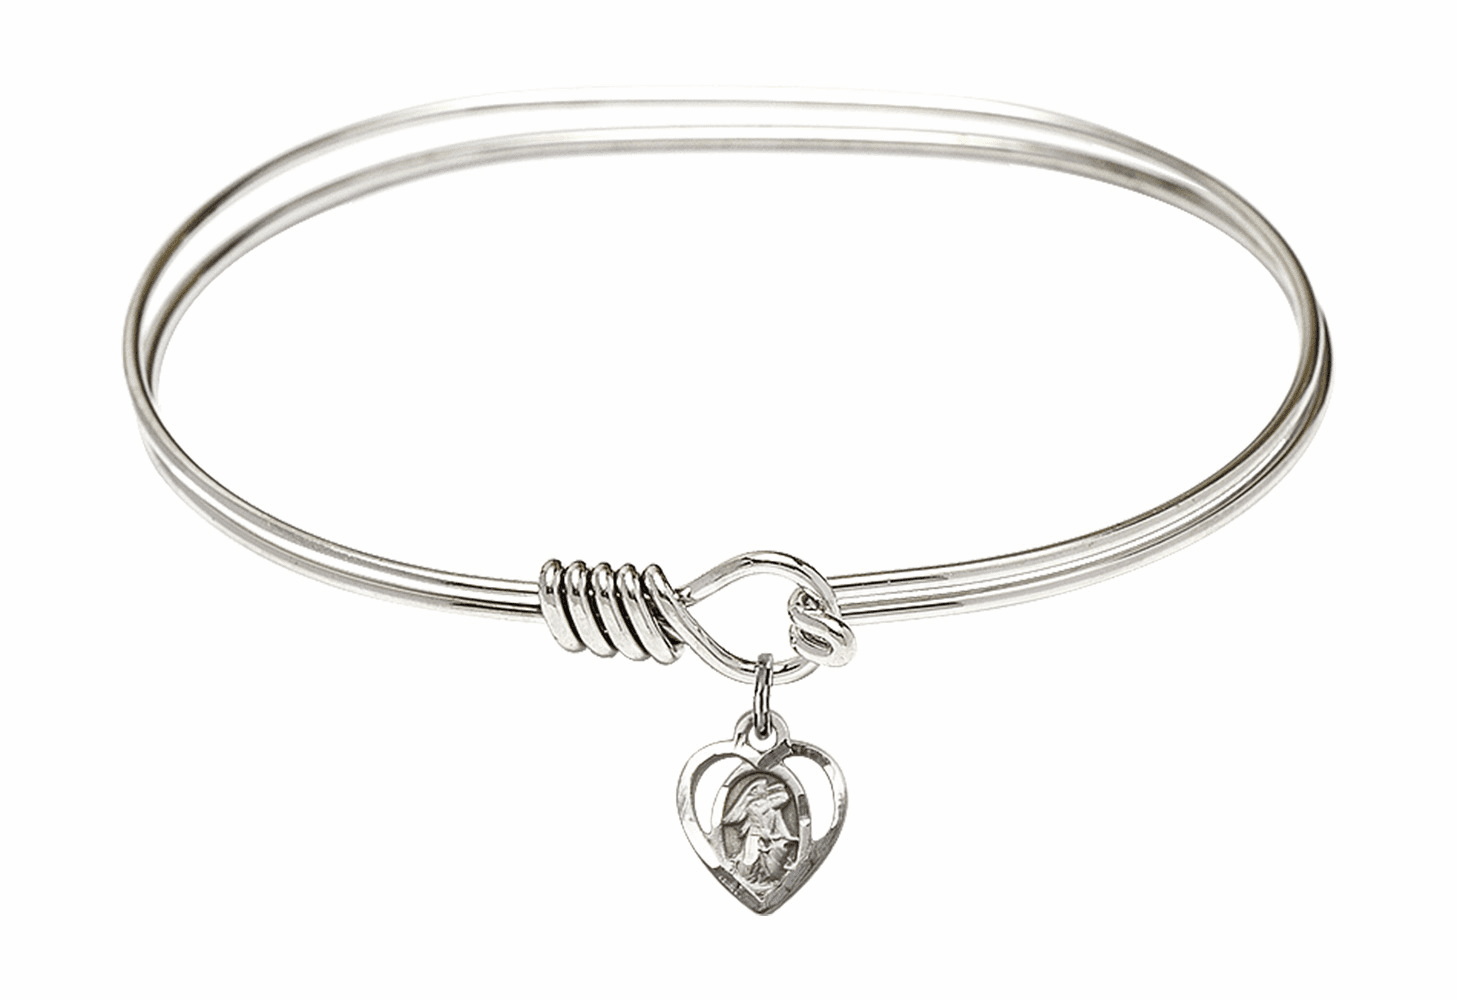 Round Eye Hook Bangle Bracelet w/Guardian Angel Heart Sterling Silver Charm by Bliss Mfg